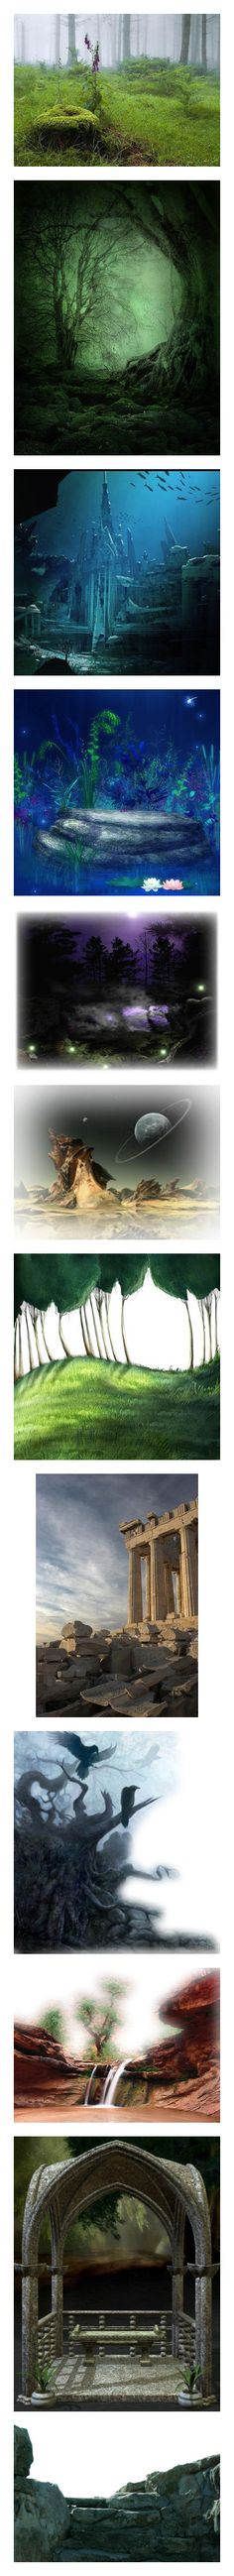 """""""Backgrounds #2"""" by dragon-spirit ❤ liked on Polyvore featuring backgrounds, forest, landscape, underwater, nature, tubes, frames, fantasy, flowers and halloween"""